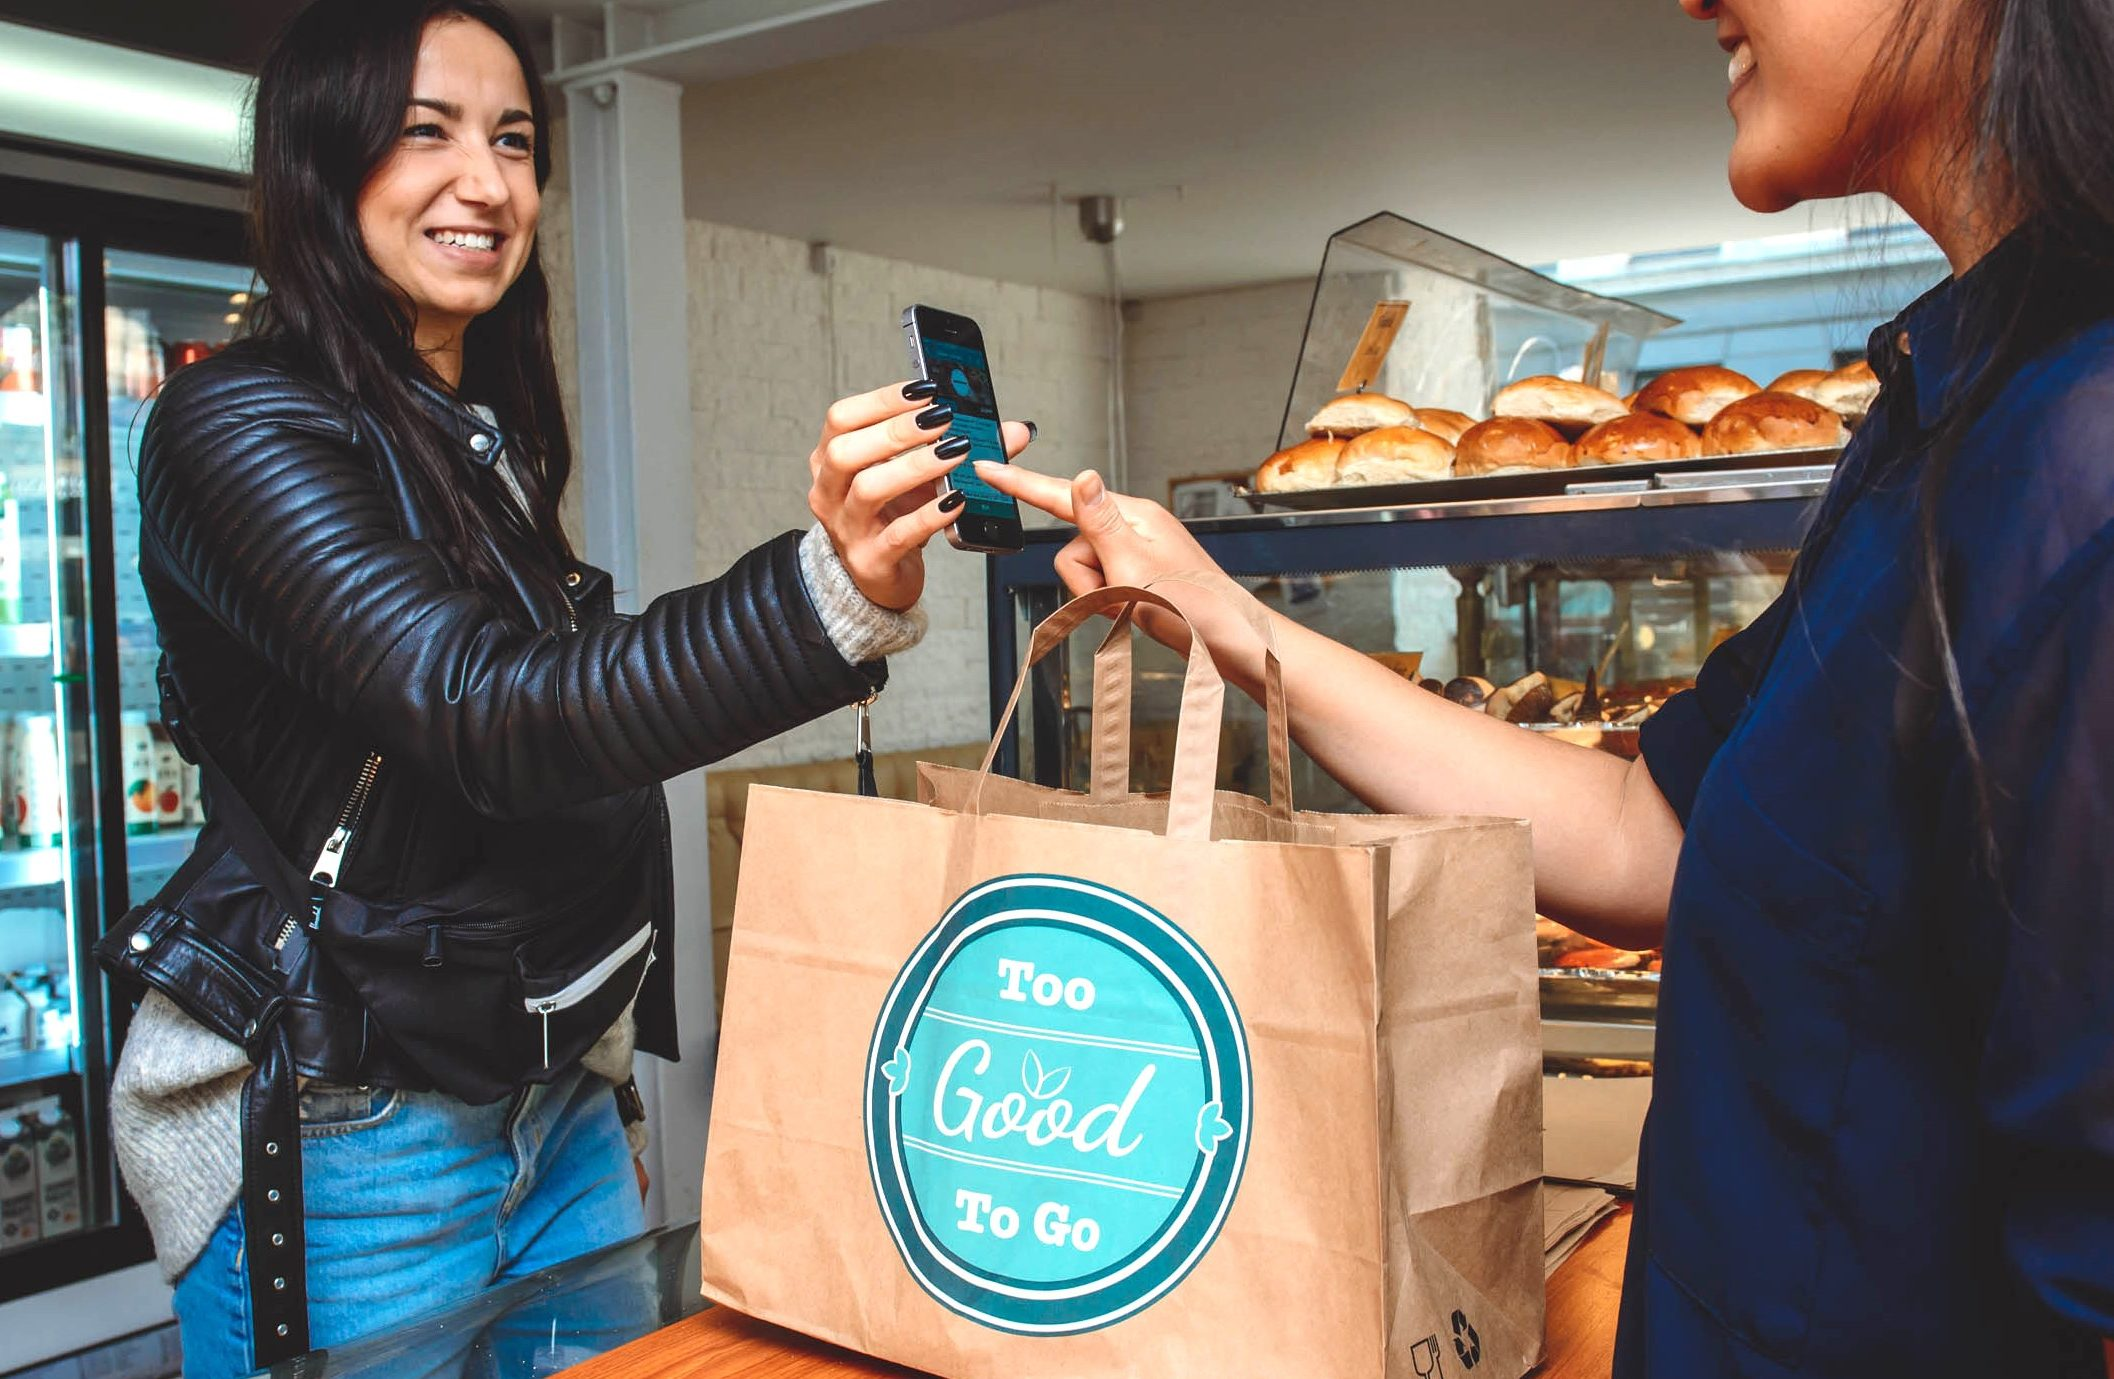 A customer saves food destined for the bin with the Too Good To Go app. (Too Good To Go)